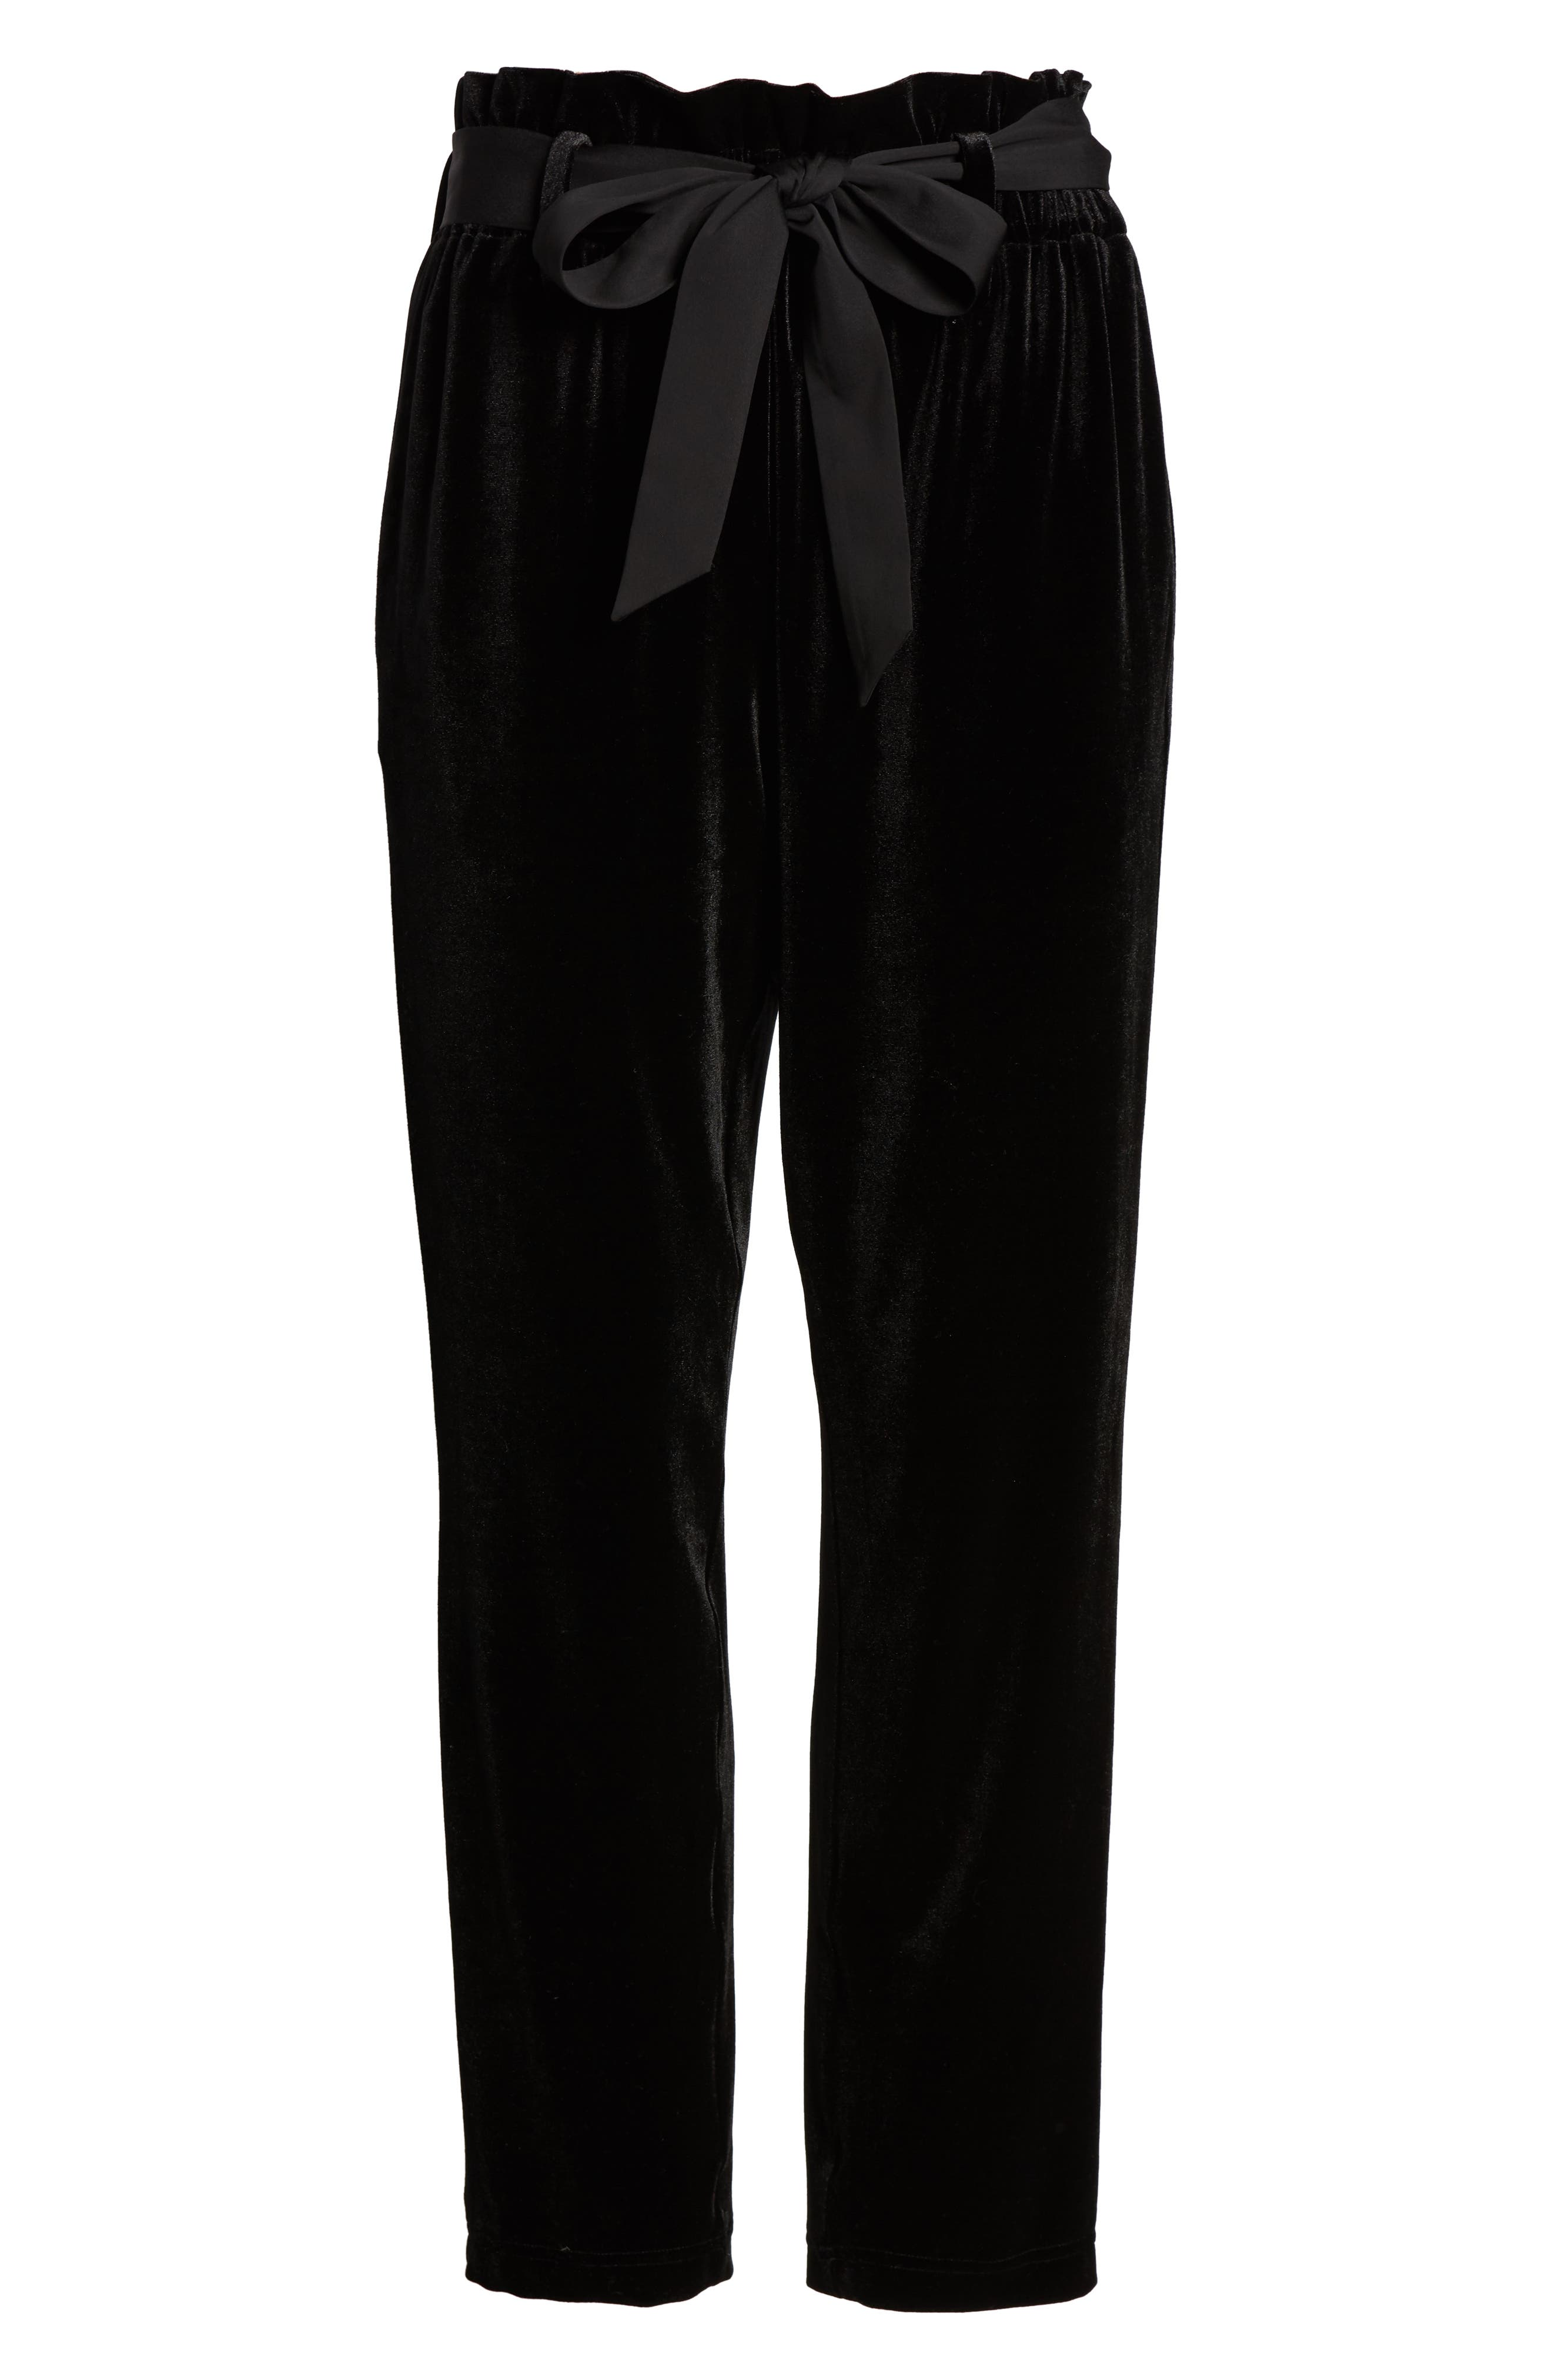 Tie Waist Velvet Pants,                             Alternate thumbnail 7, color,                             001